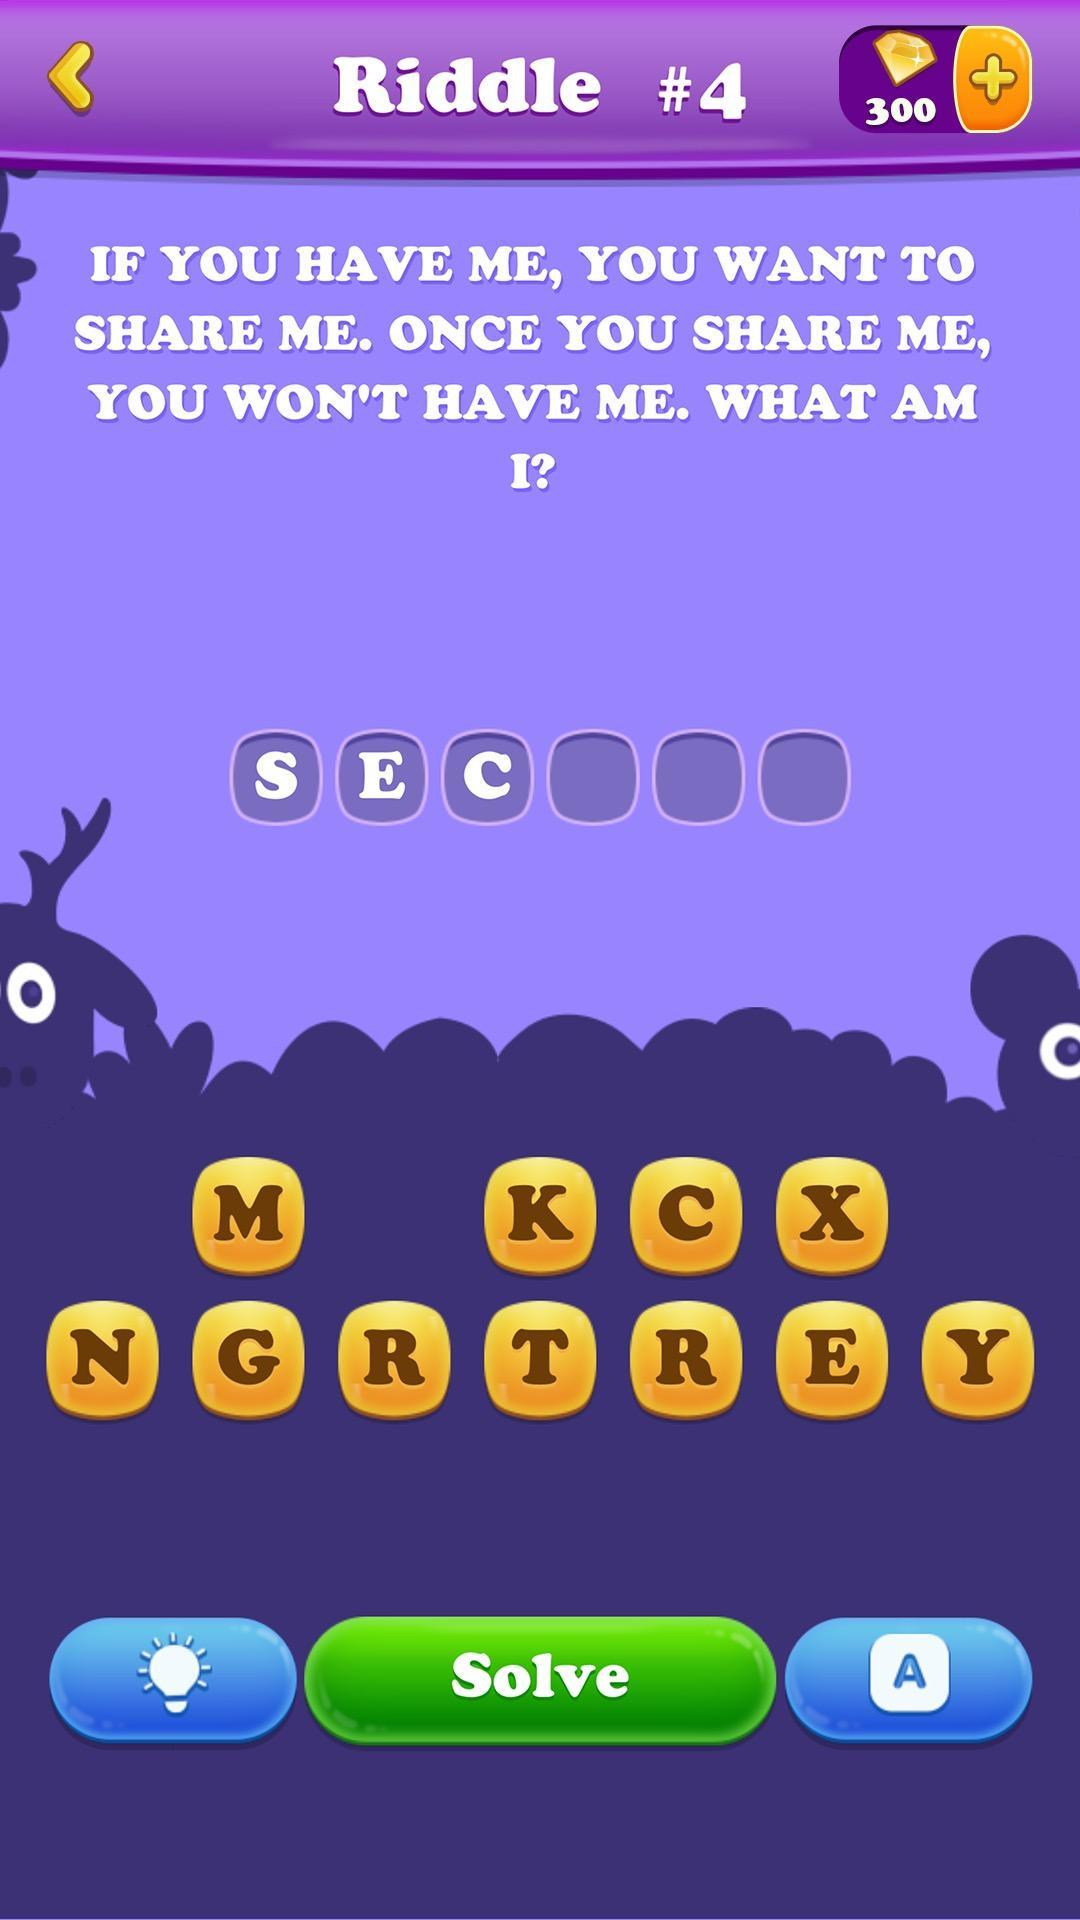 What am I? Riddles for Android - APK Download